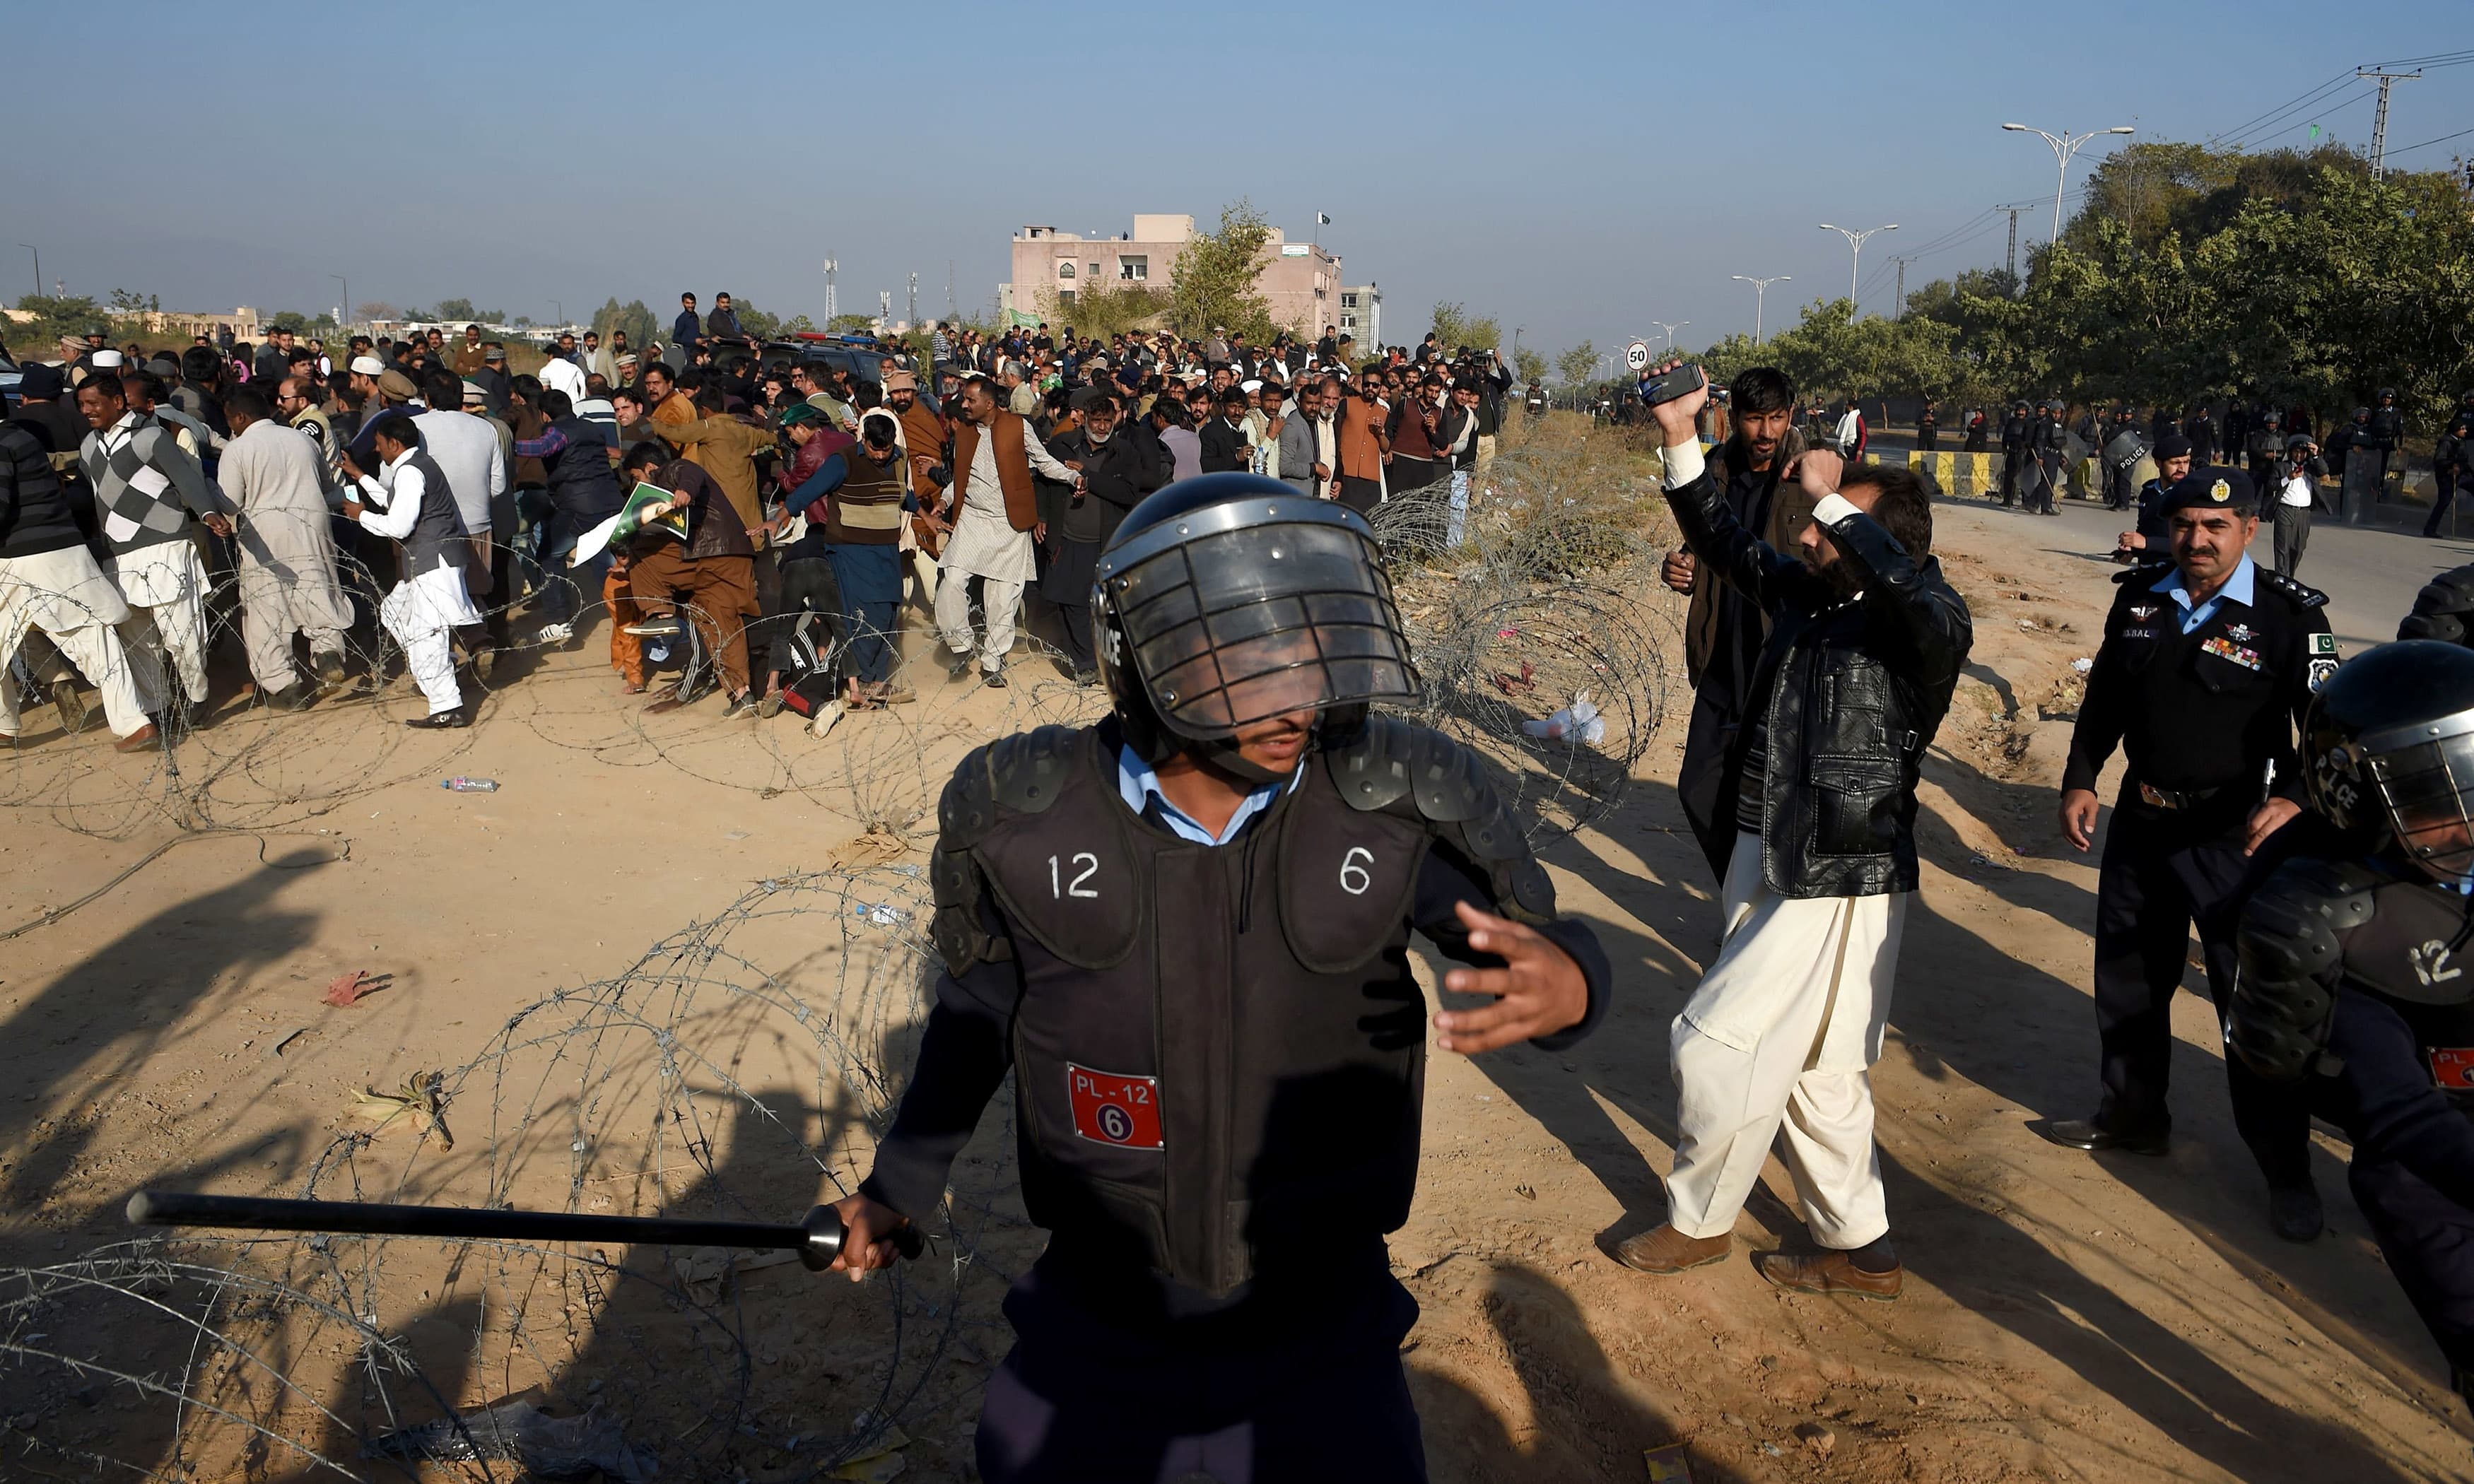 Policemen disperse PML-N supporters outside the anti-corruption court in Islamabad. —AFP